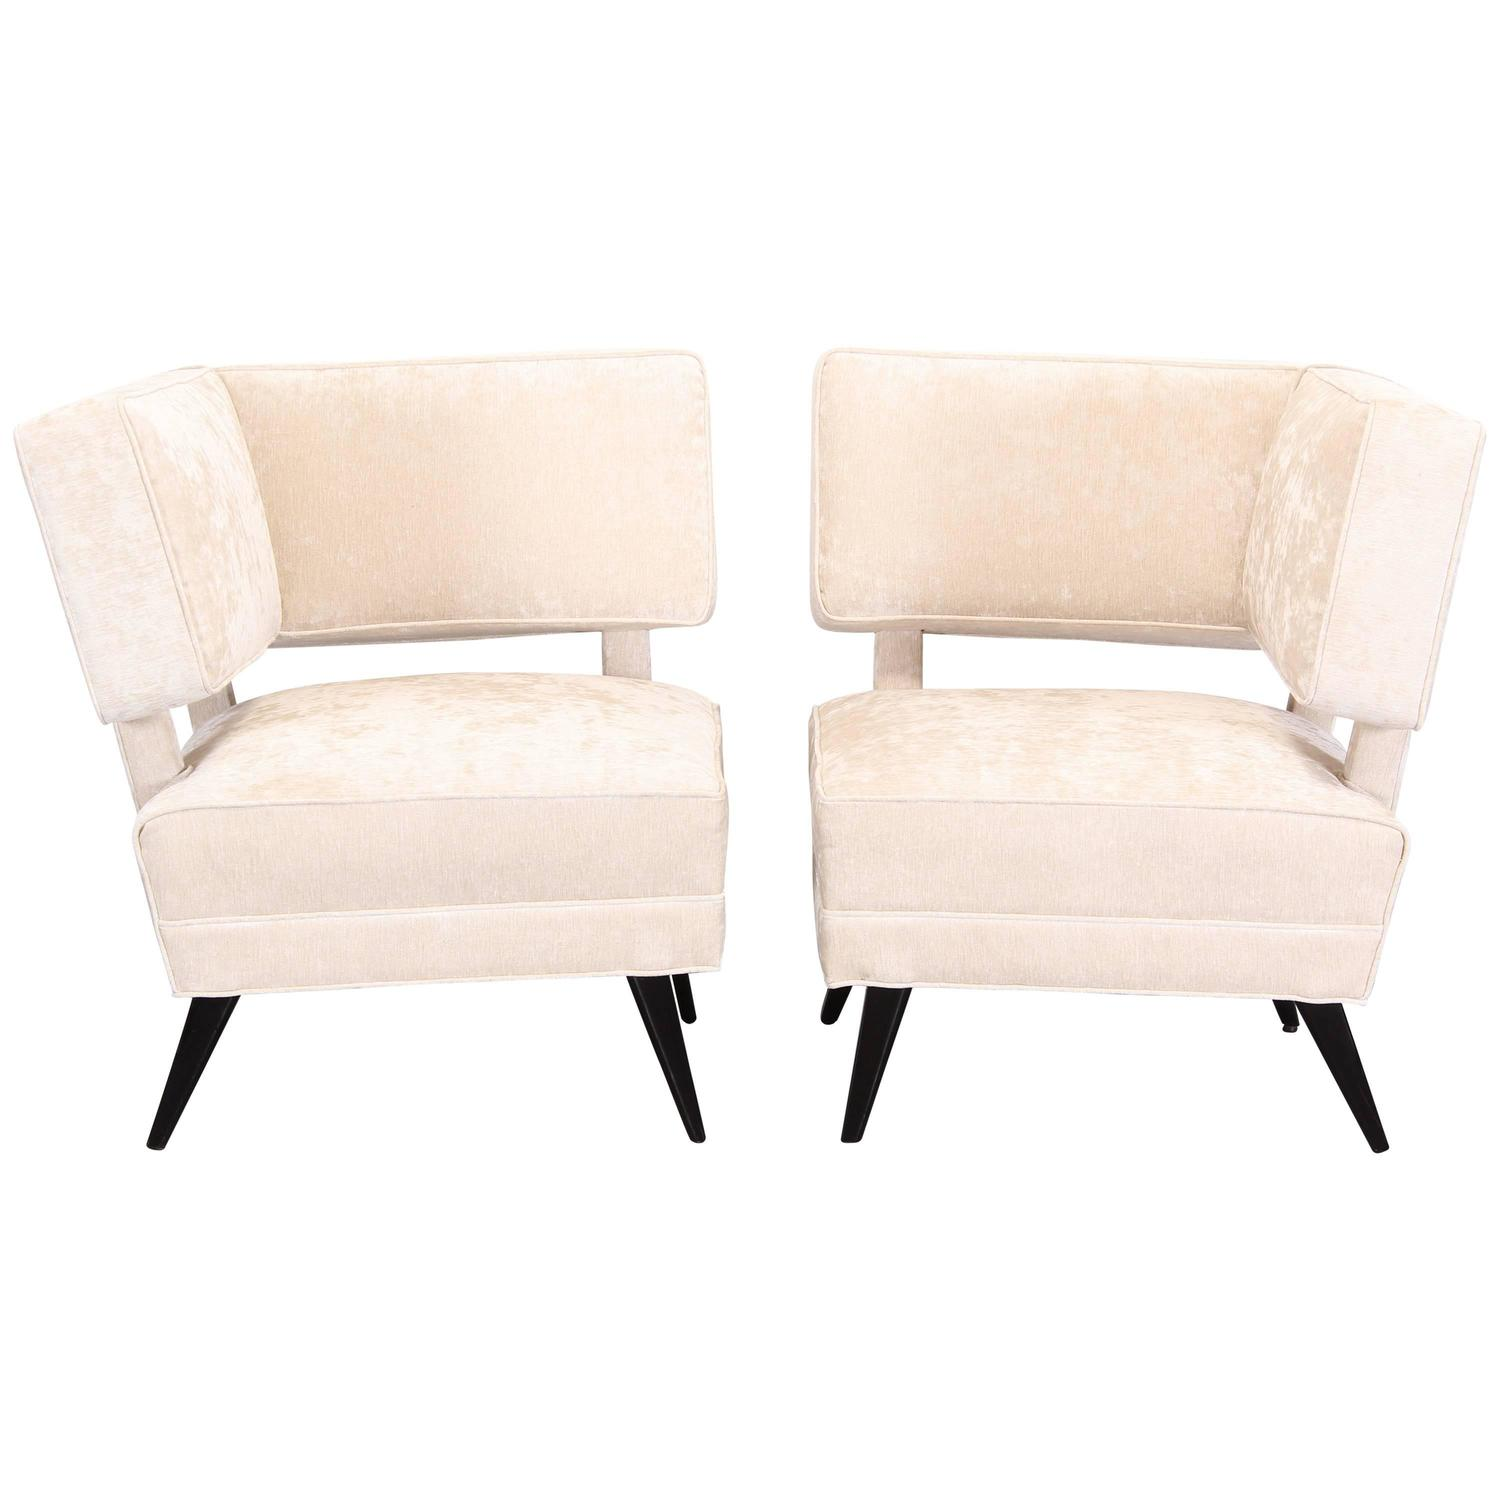 Furniture Sale New York: Custom Chairs From The Tate Hotel New York, 1940 For Sale